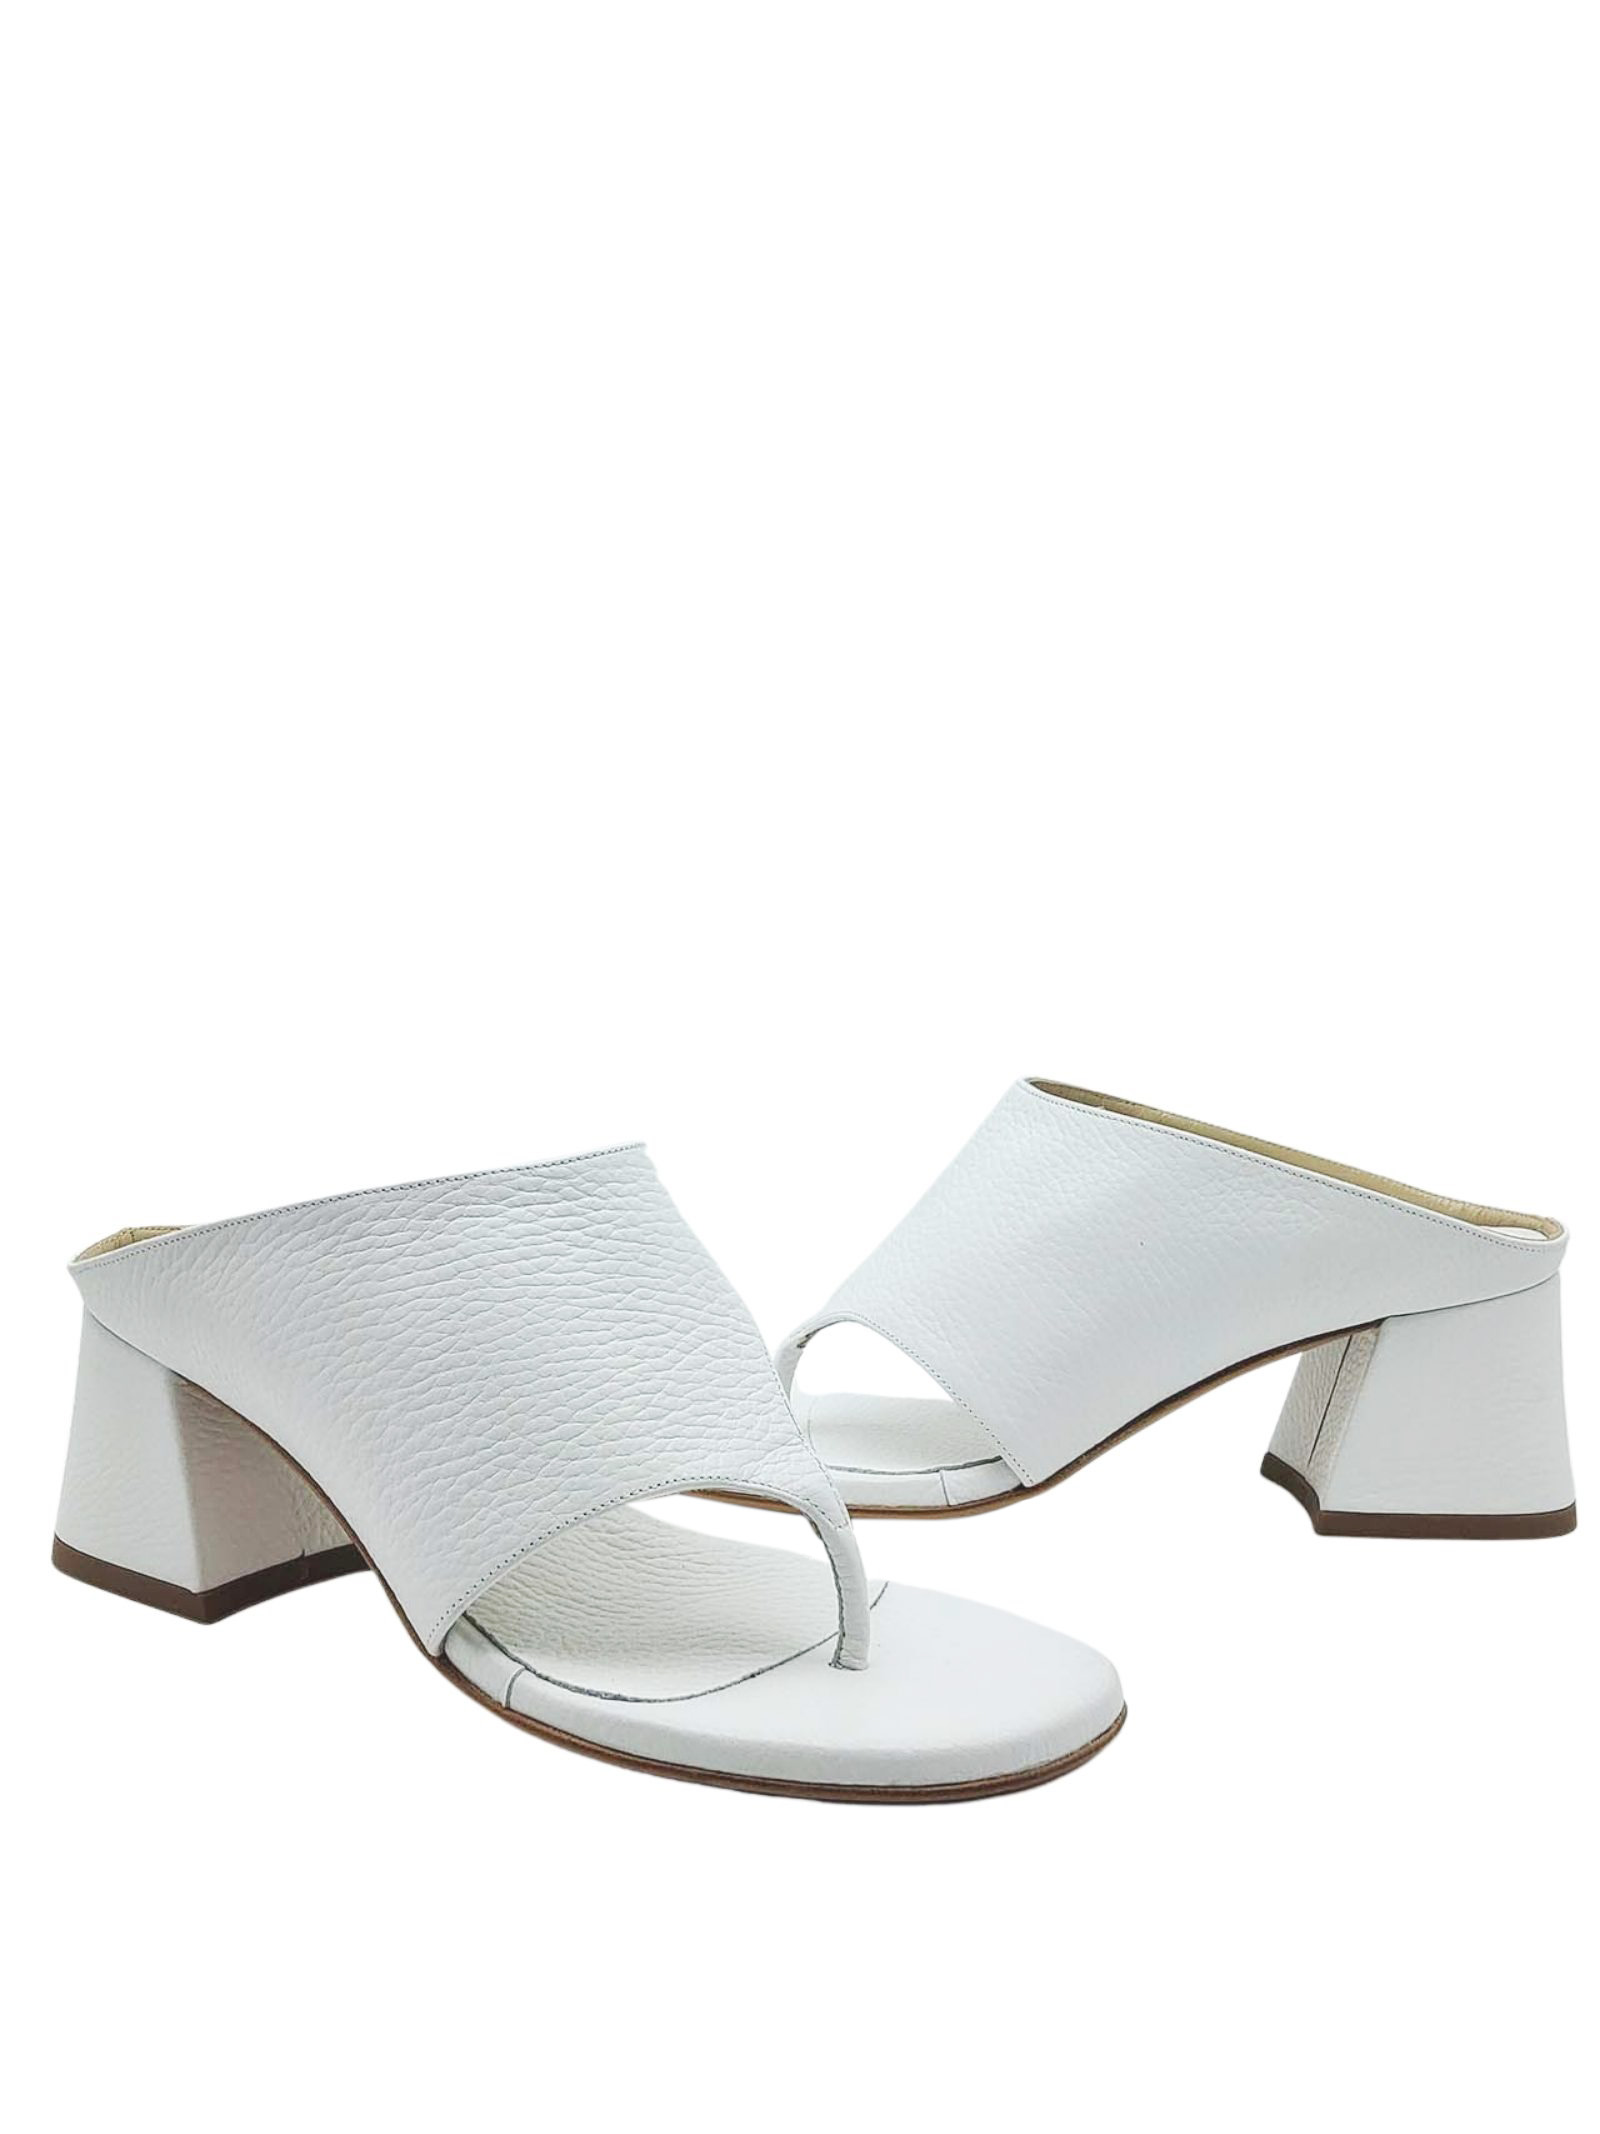 Women's Shoes Thong Sandals in White Leather with Band Tattoo | Sandals | 4105100